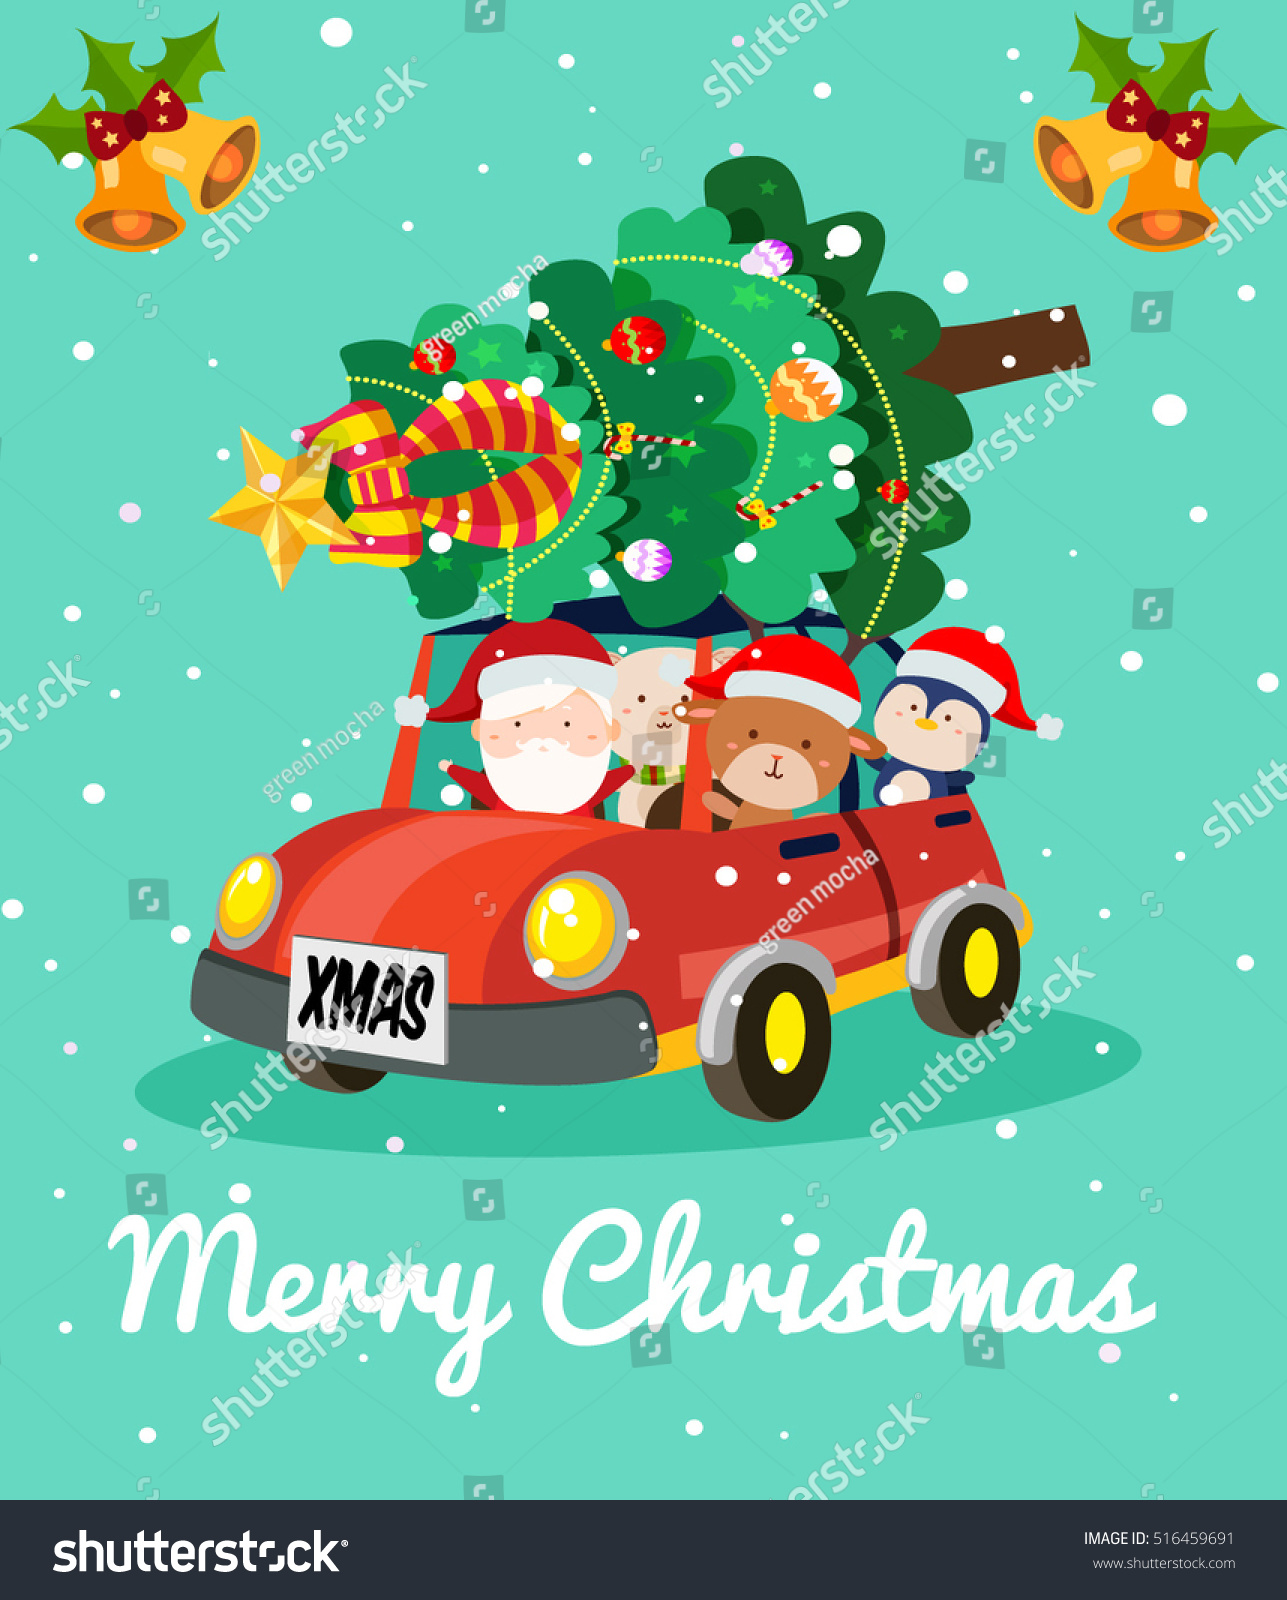 Merry Christmas Card Santa Clause Friends Stock Vector (Royalty Free ...